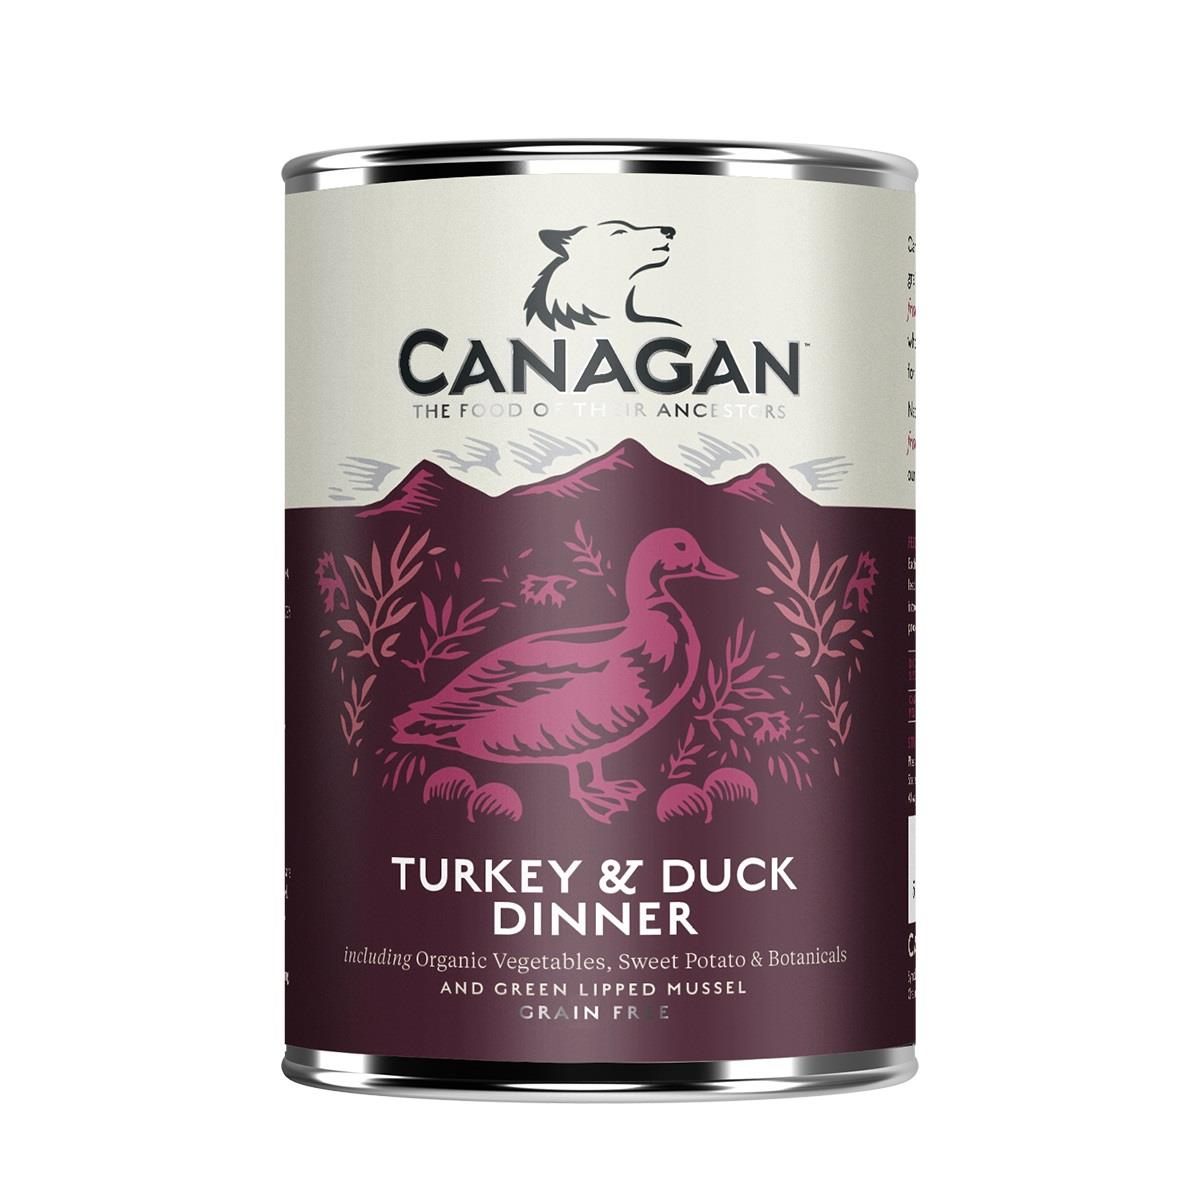 Canagan Boksemat Hund Turkey & Duck Dinner 6stk x 400g (Pk pris)